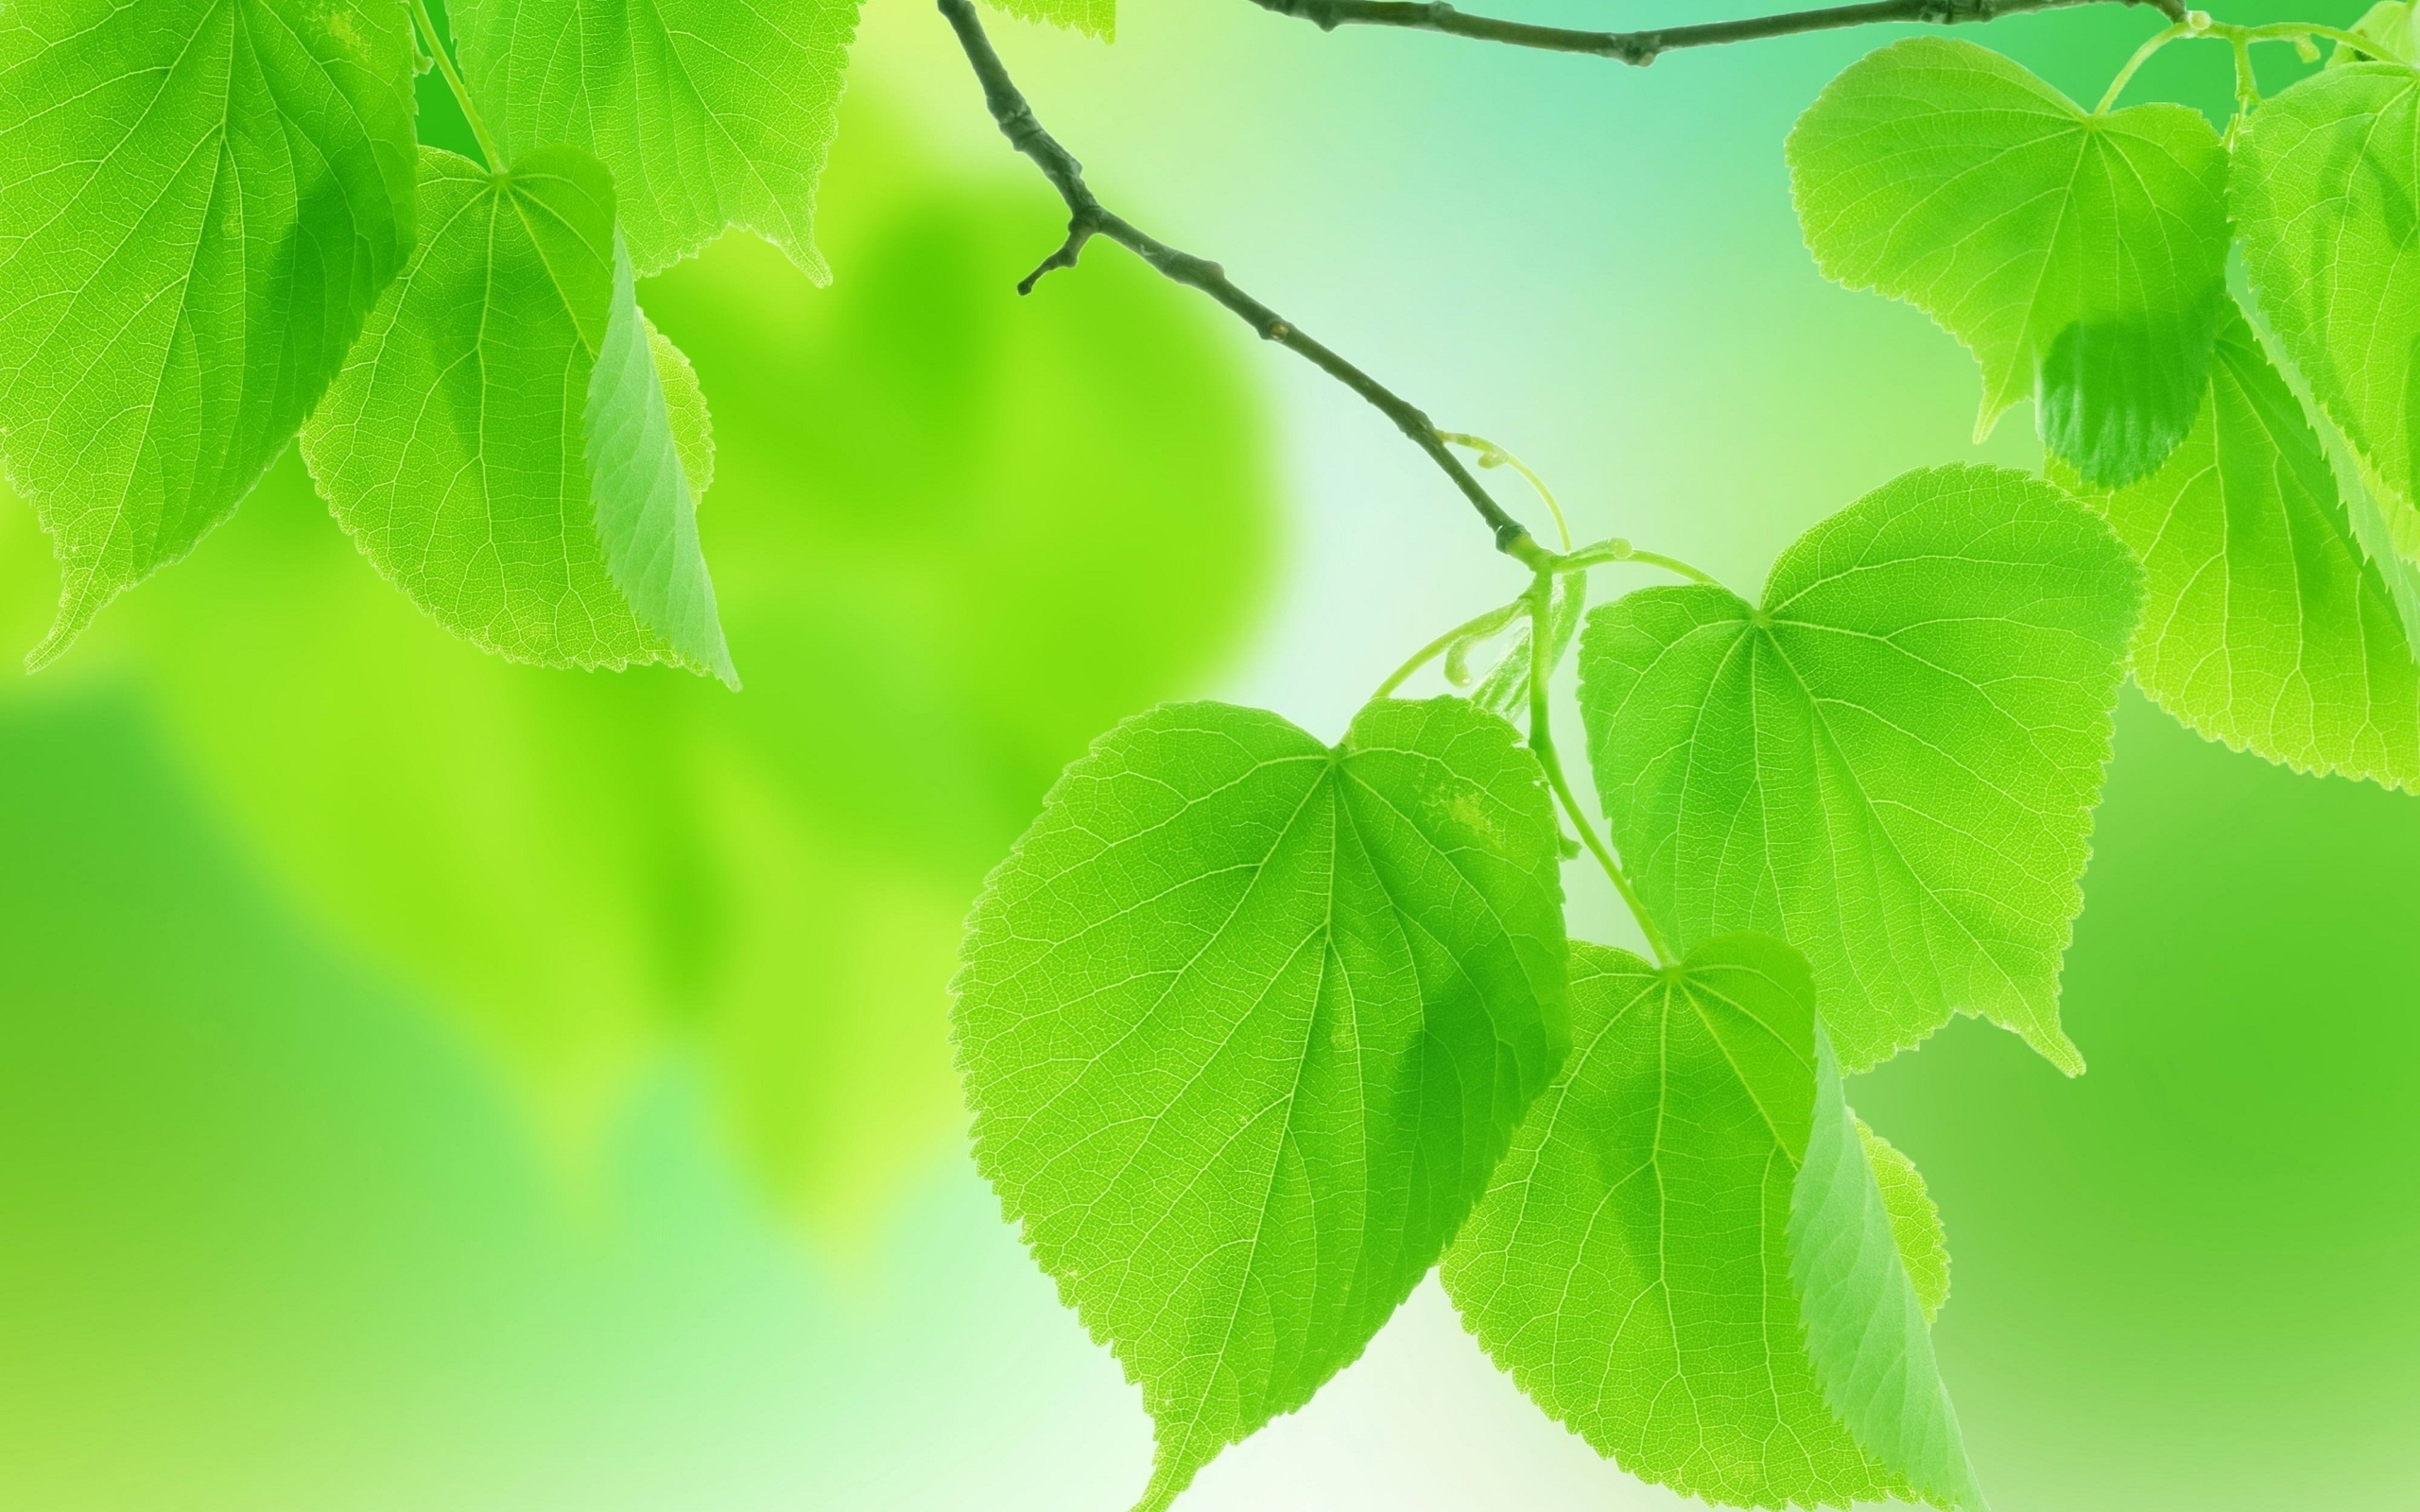 Leaves Green Close Up Branch – [2560 x 1600]